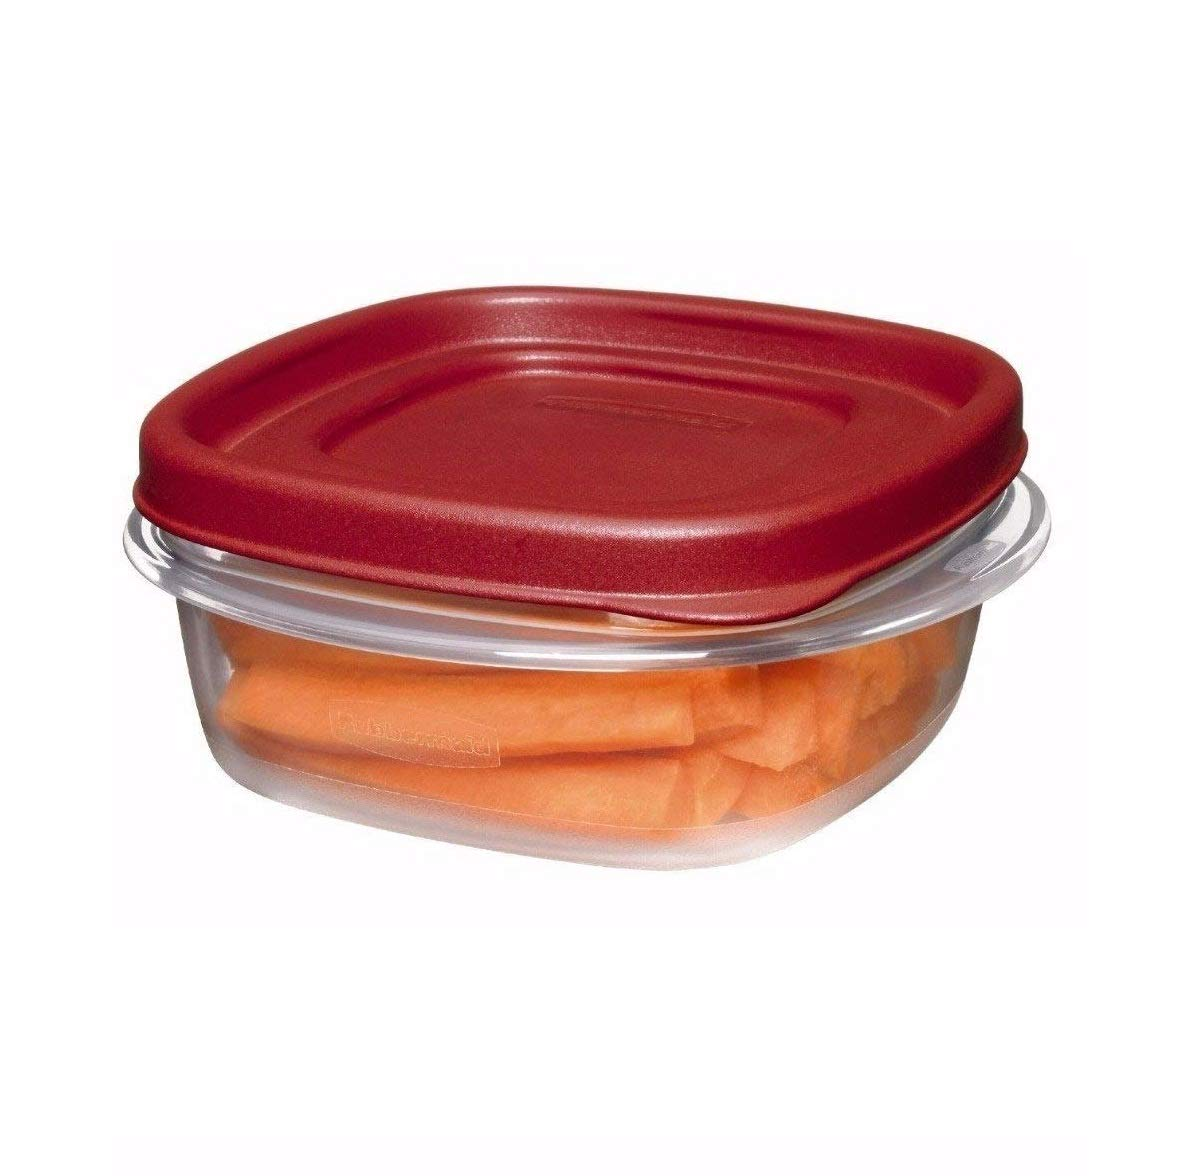 Rubbermaid COMIN18JU082133 669900229708 Easy Find Lid Square 1-1/4-Cup Food Storage Container, 12-Pack, Red, Clear